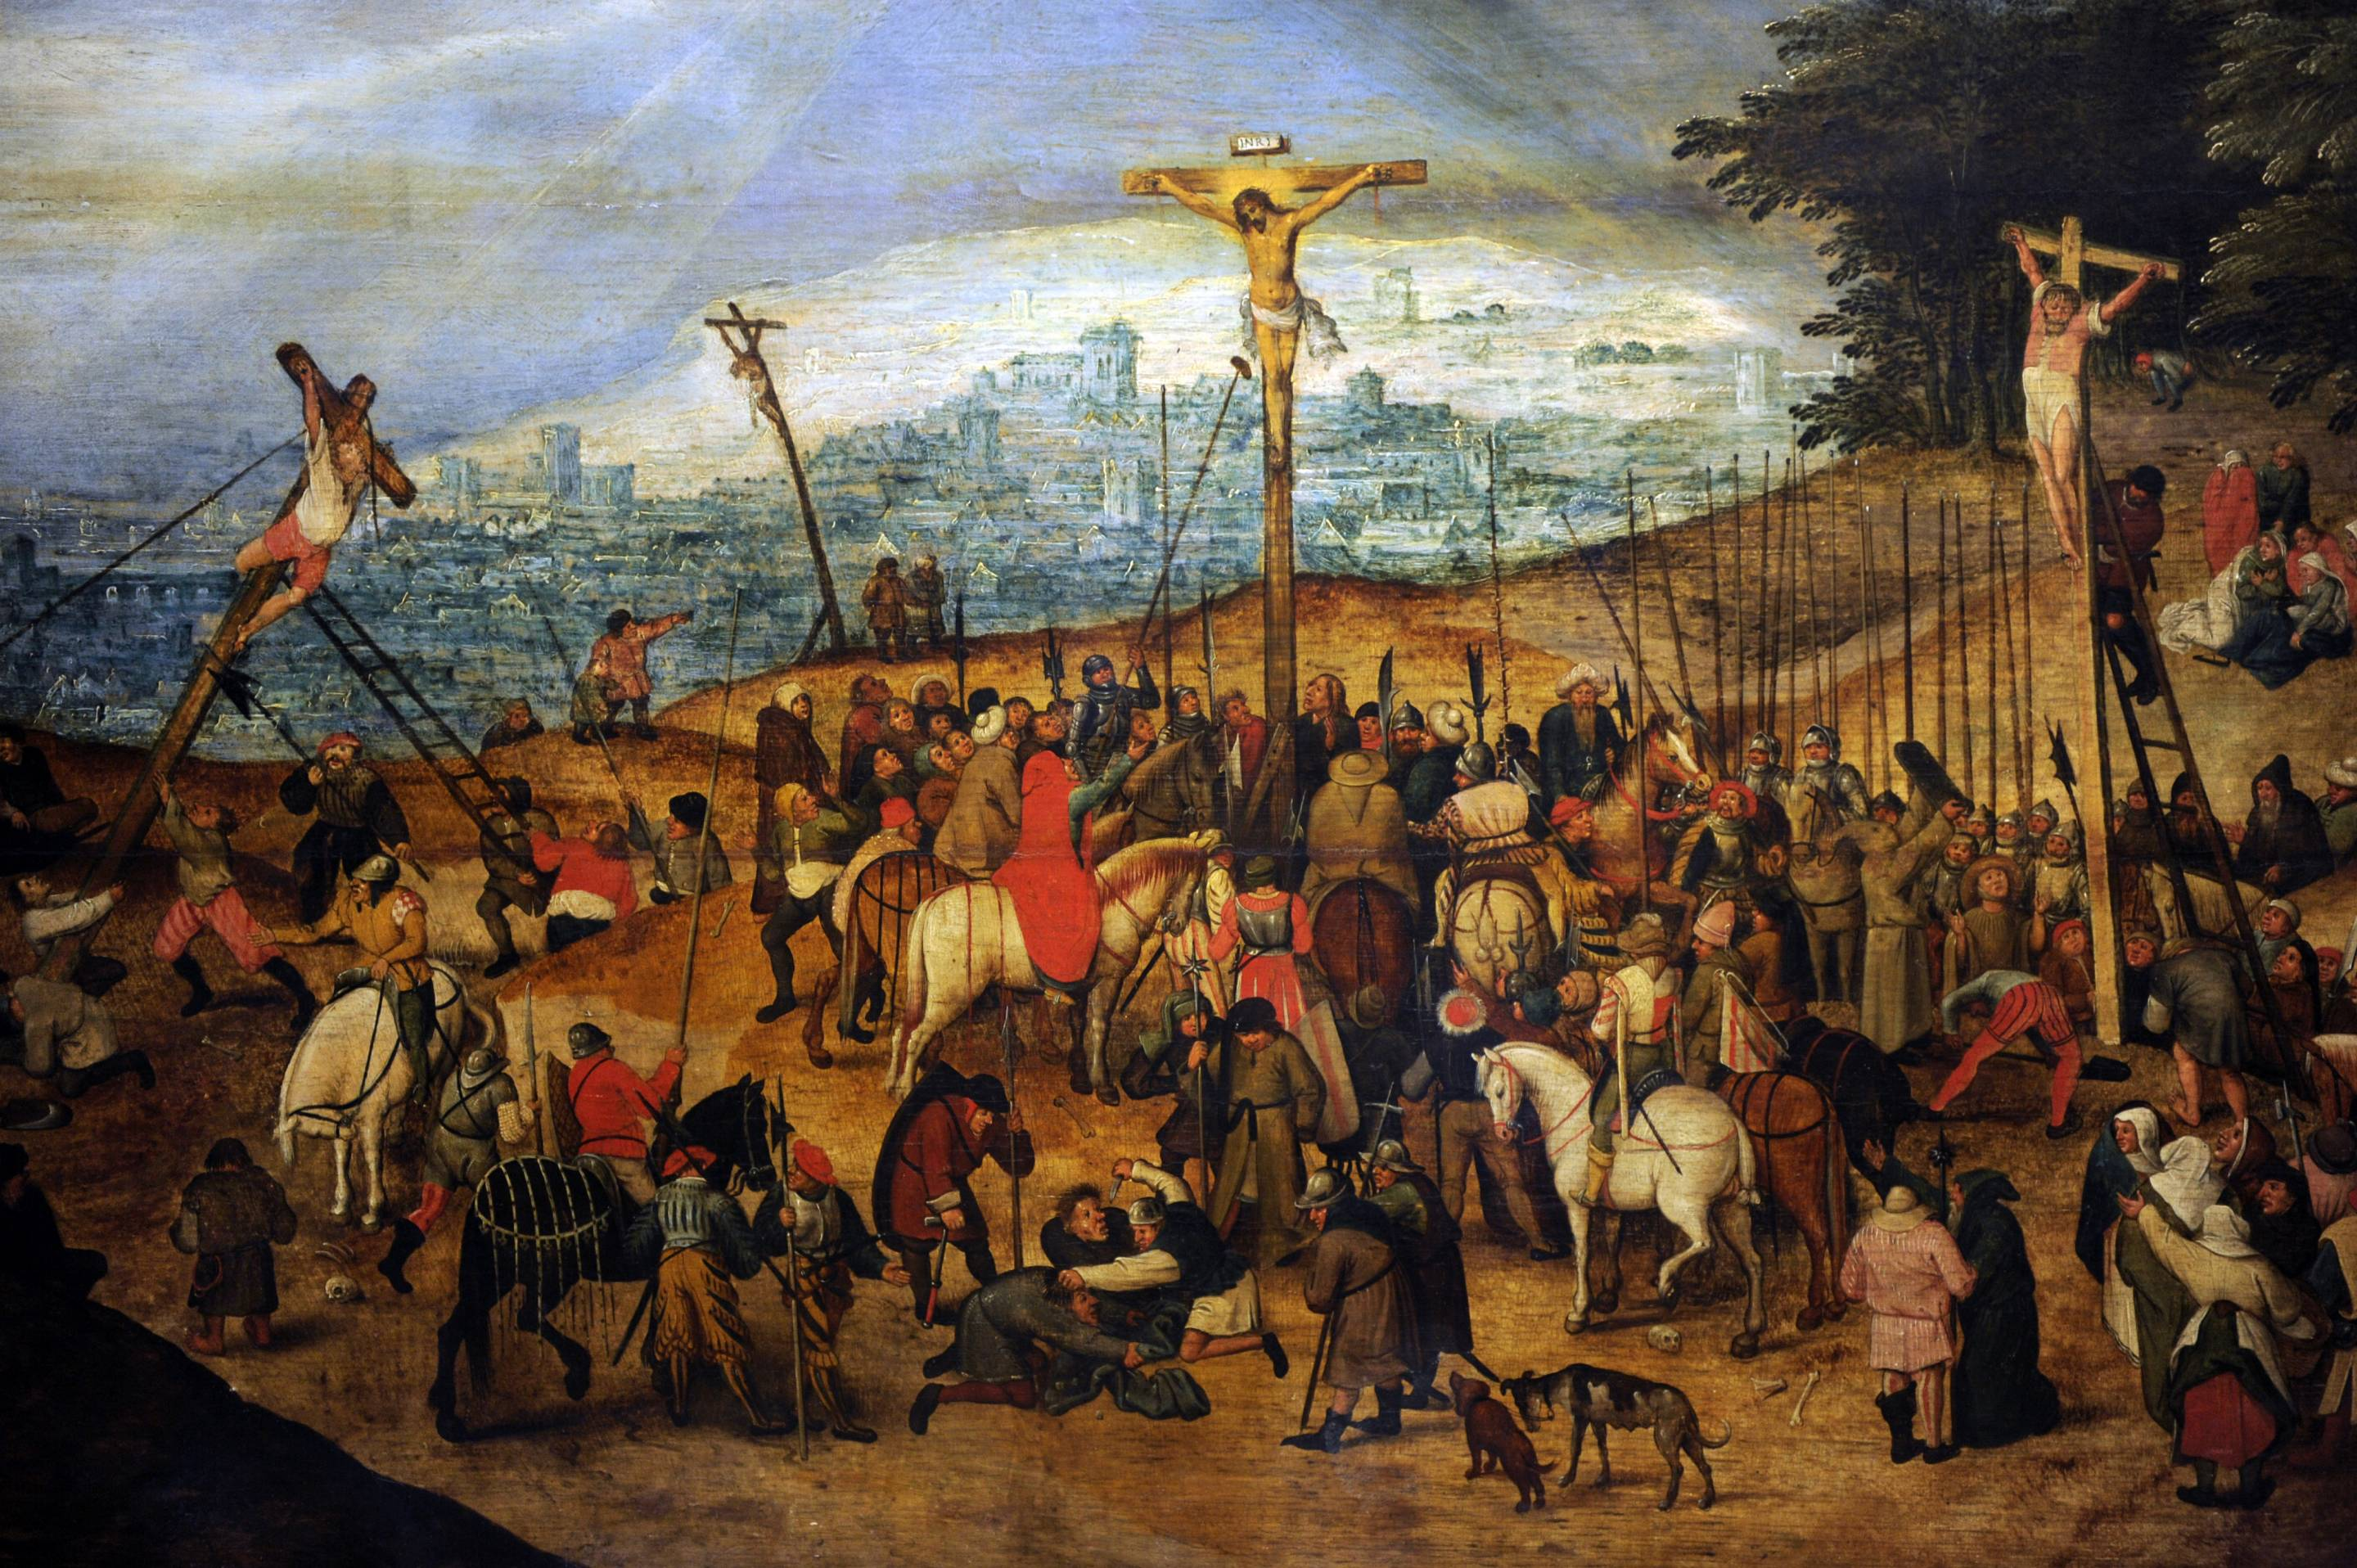 The Crucifixion or The Calvary, 1617, by Pieter Brueghel the Younger